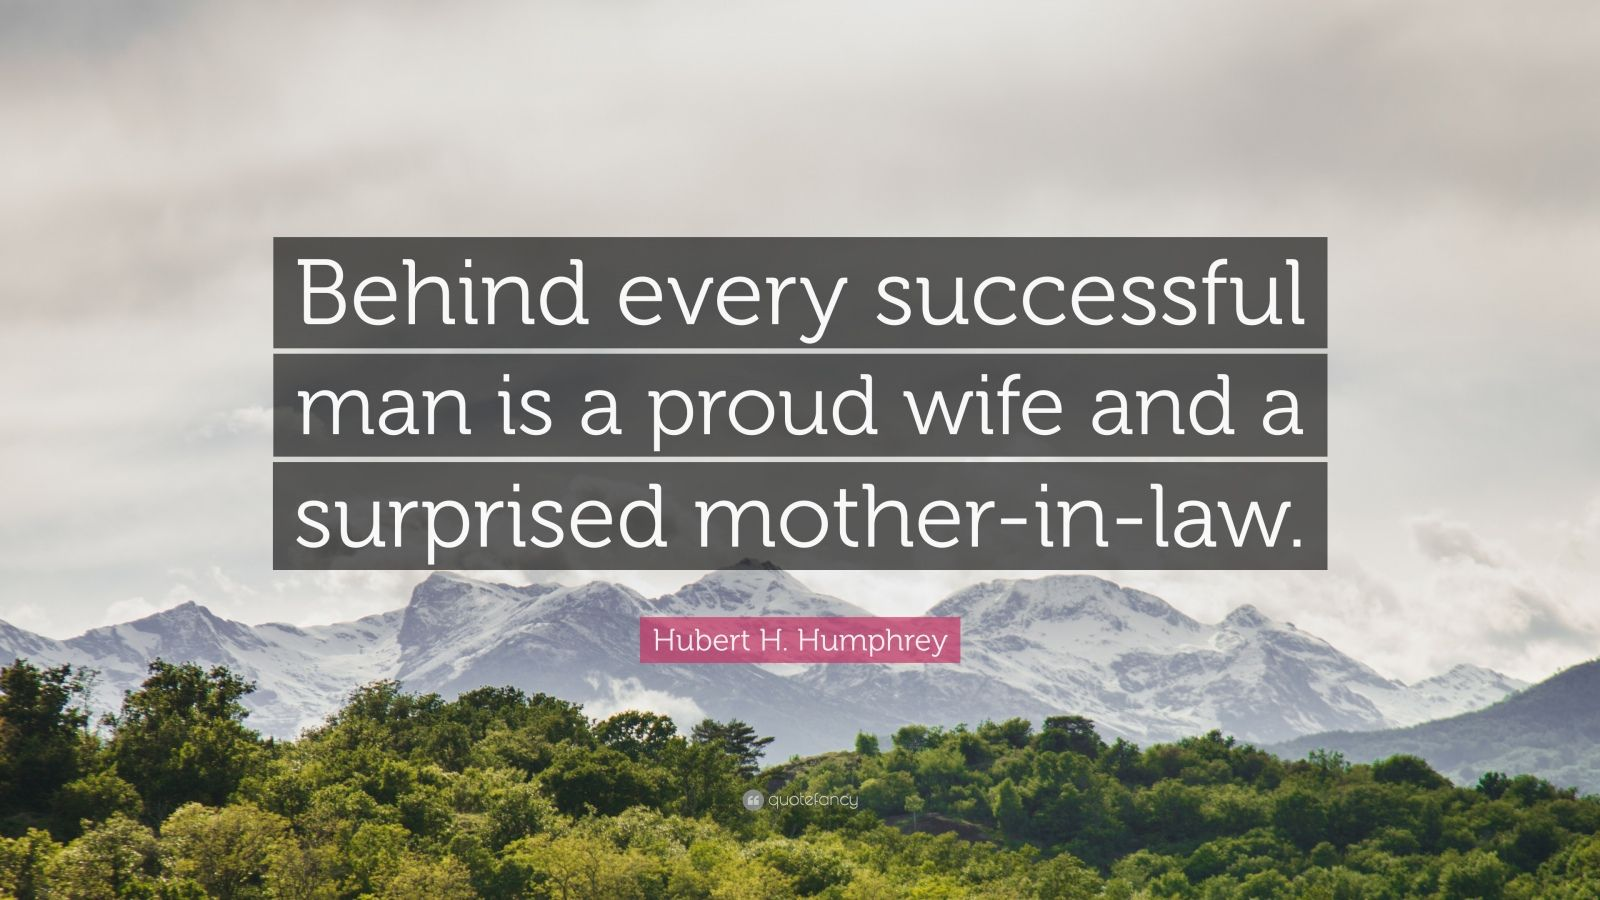 """Hubert H. Humphrey Quote: """"Behind every successful man is a proud wife and a surprised mother-in-law."""""""